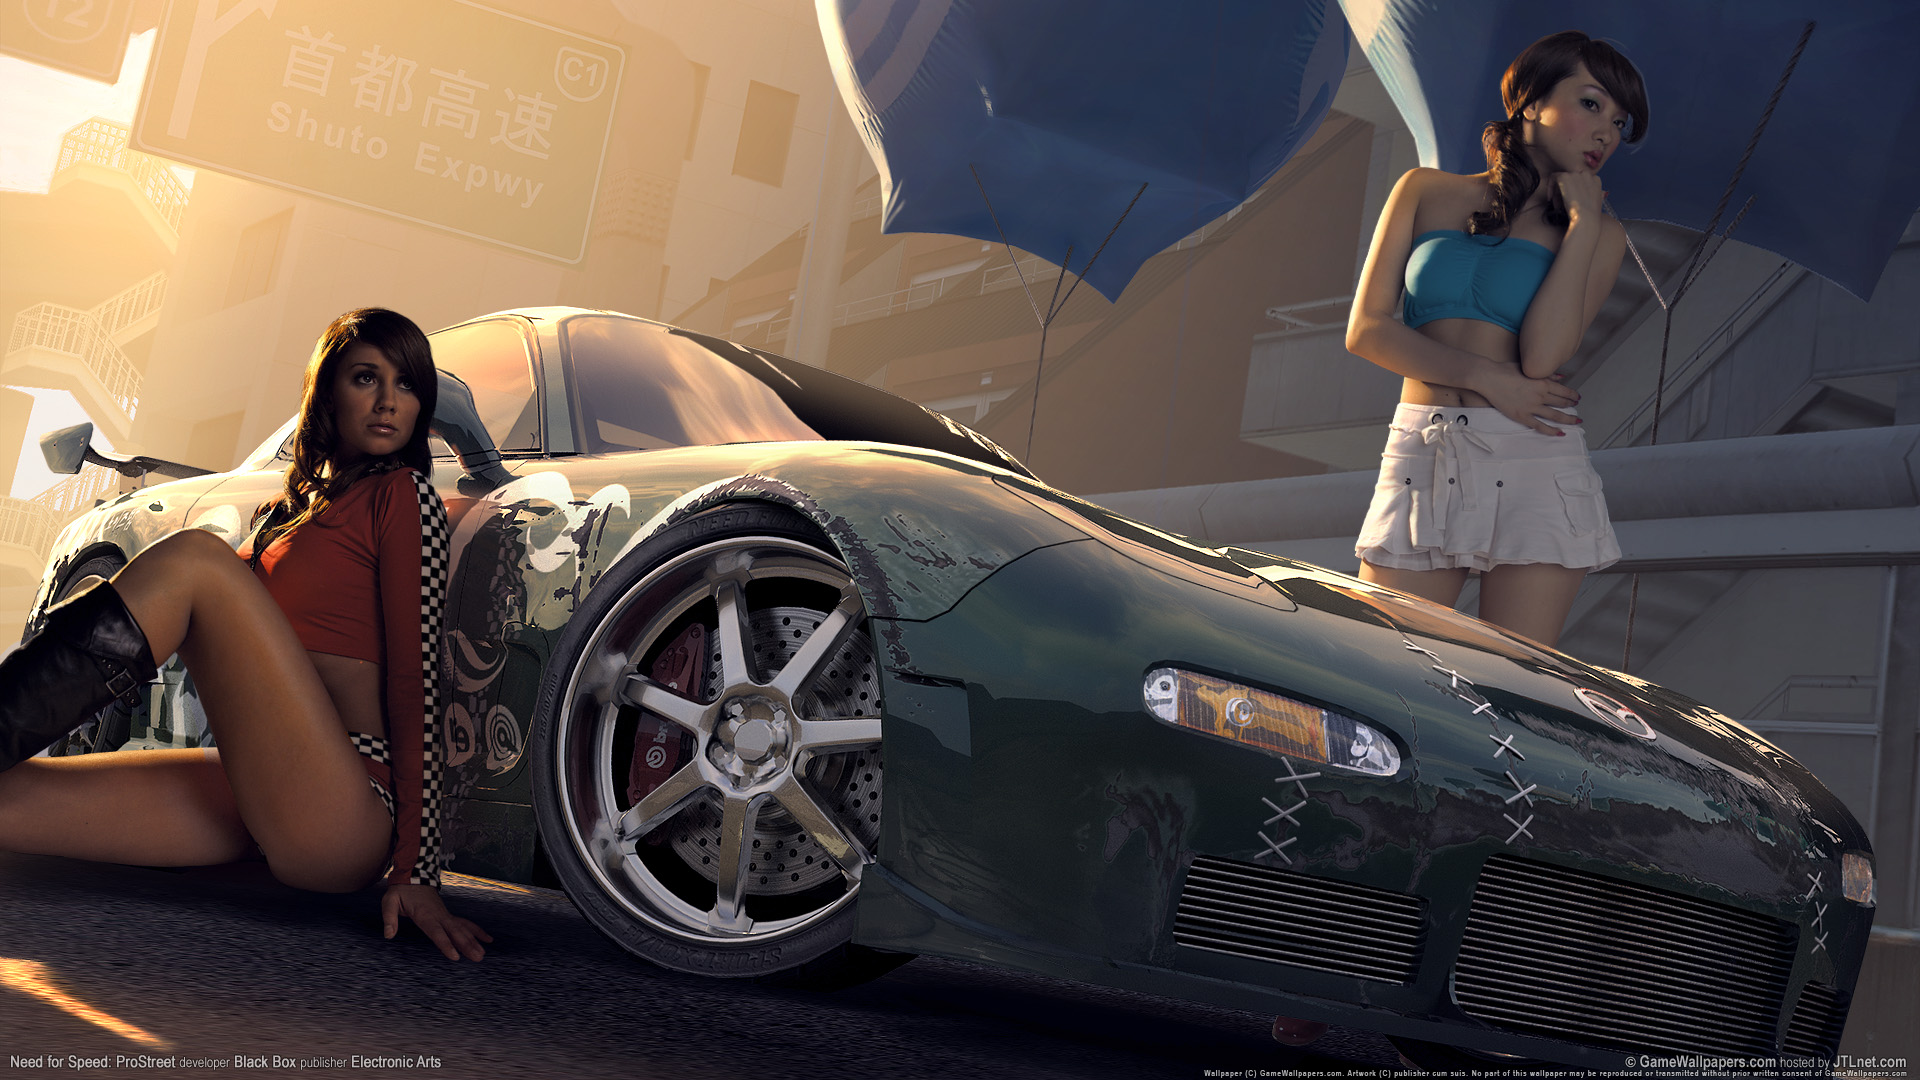 Need for speed prostreet Girls 5